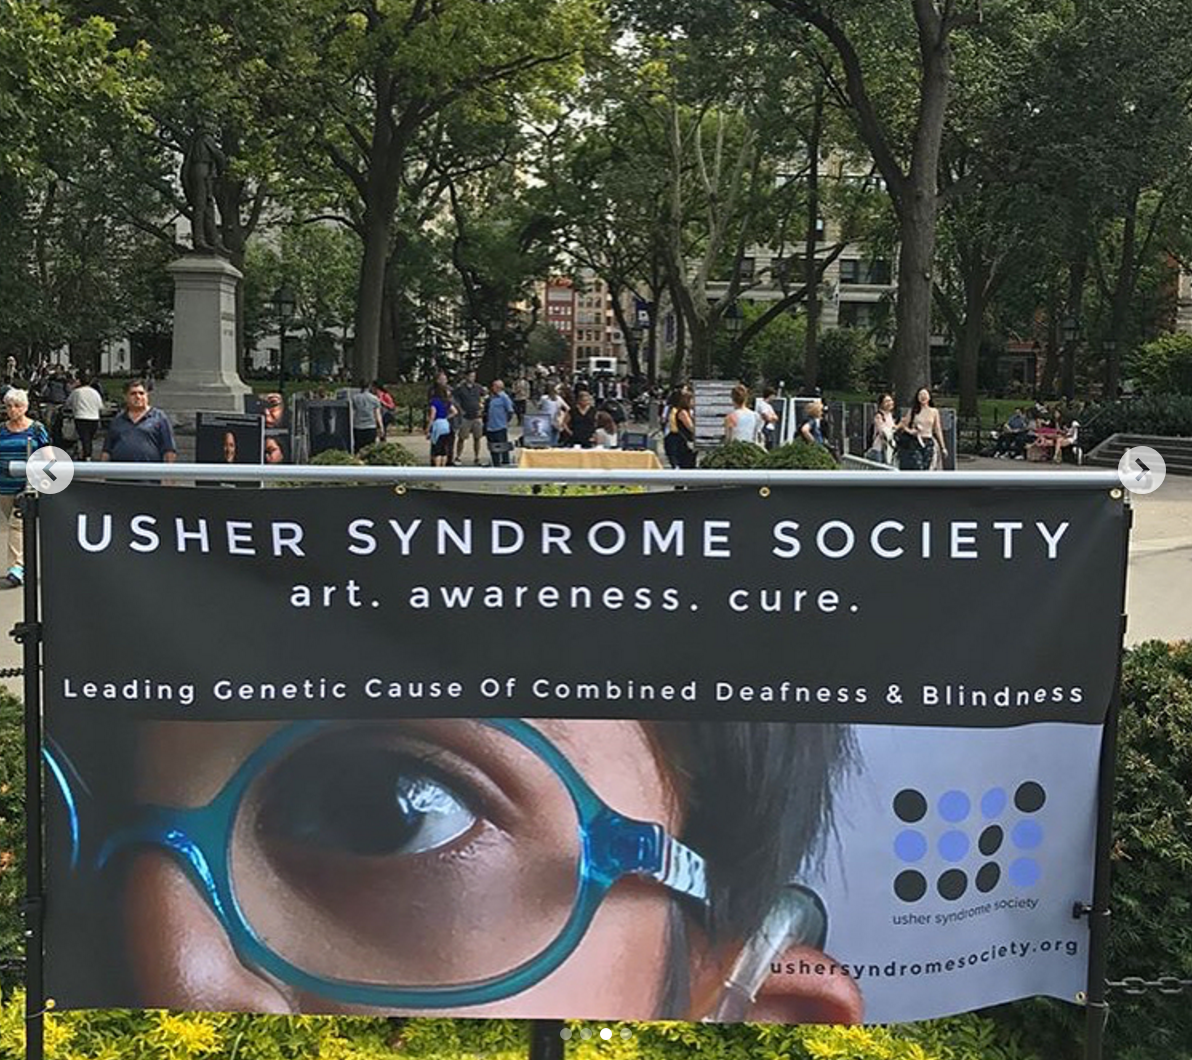 Usher Syndrome Society banner near the portraits in the park. Photo by Rebecca Alexander.